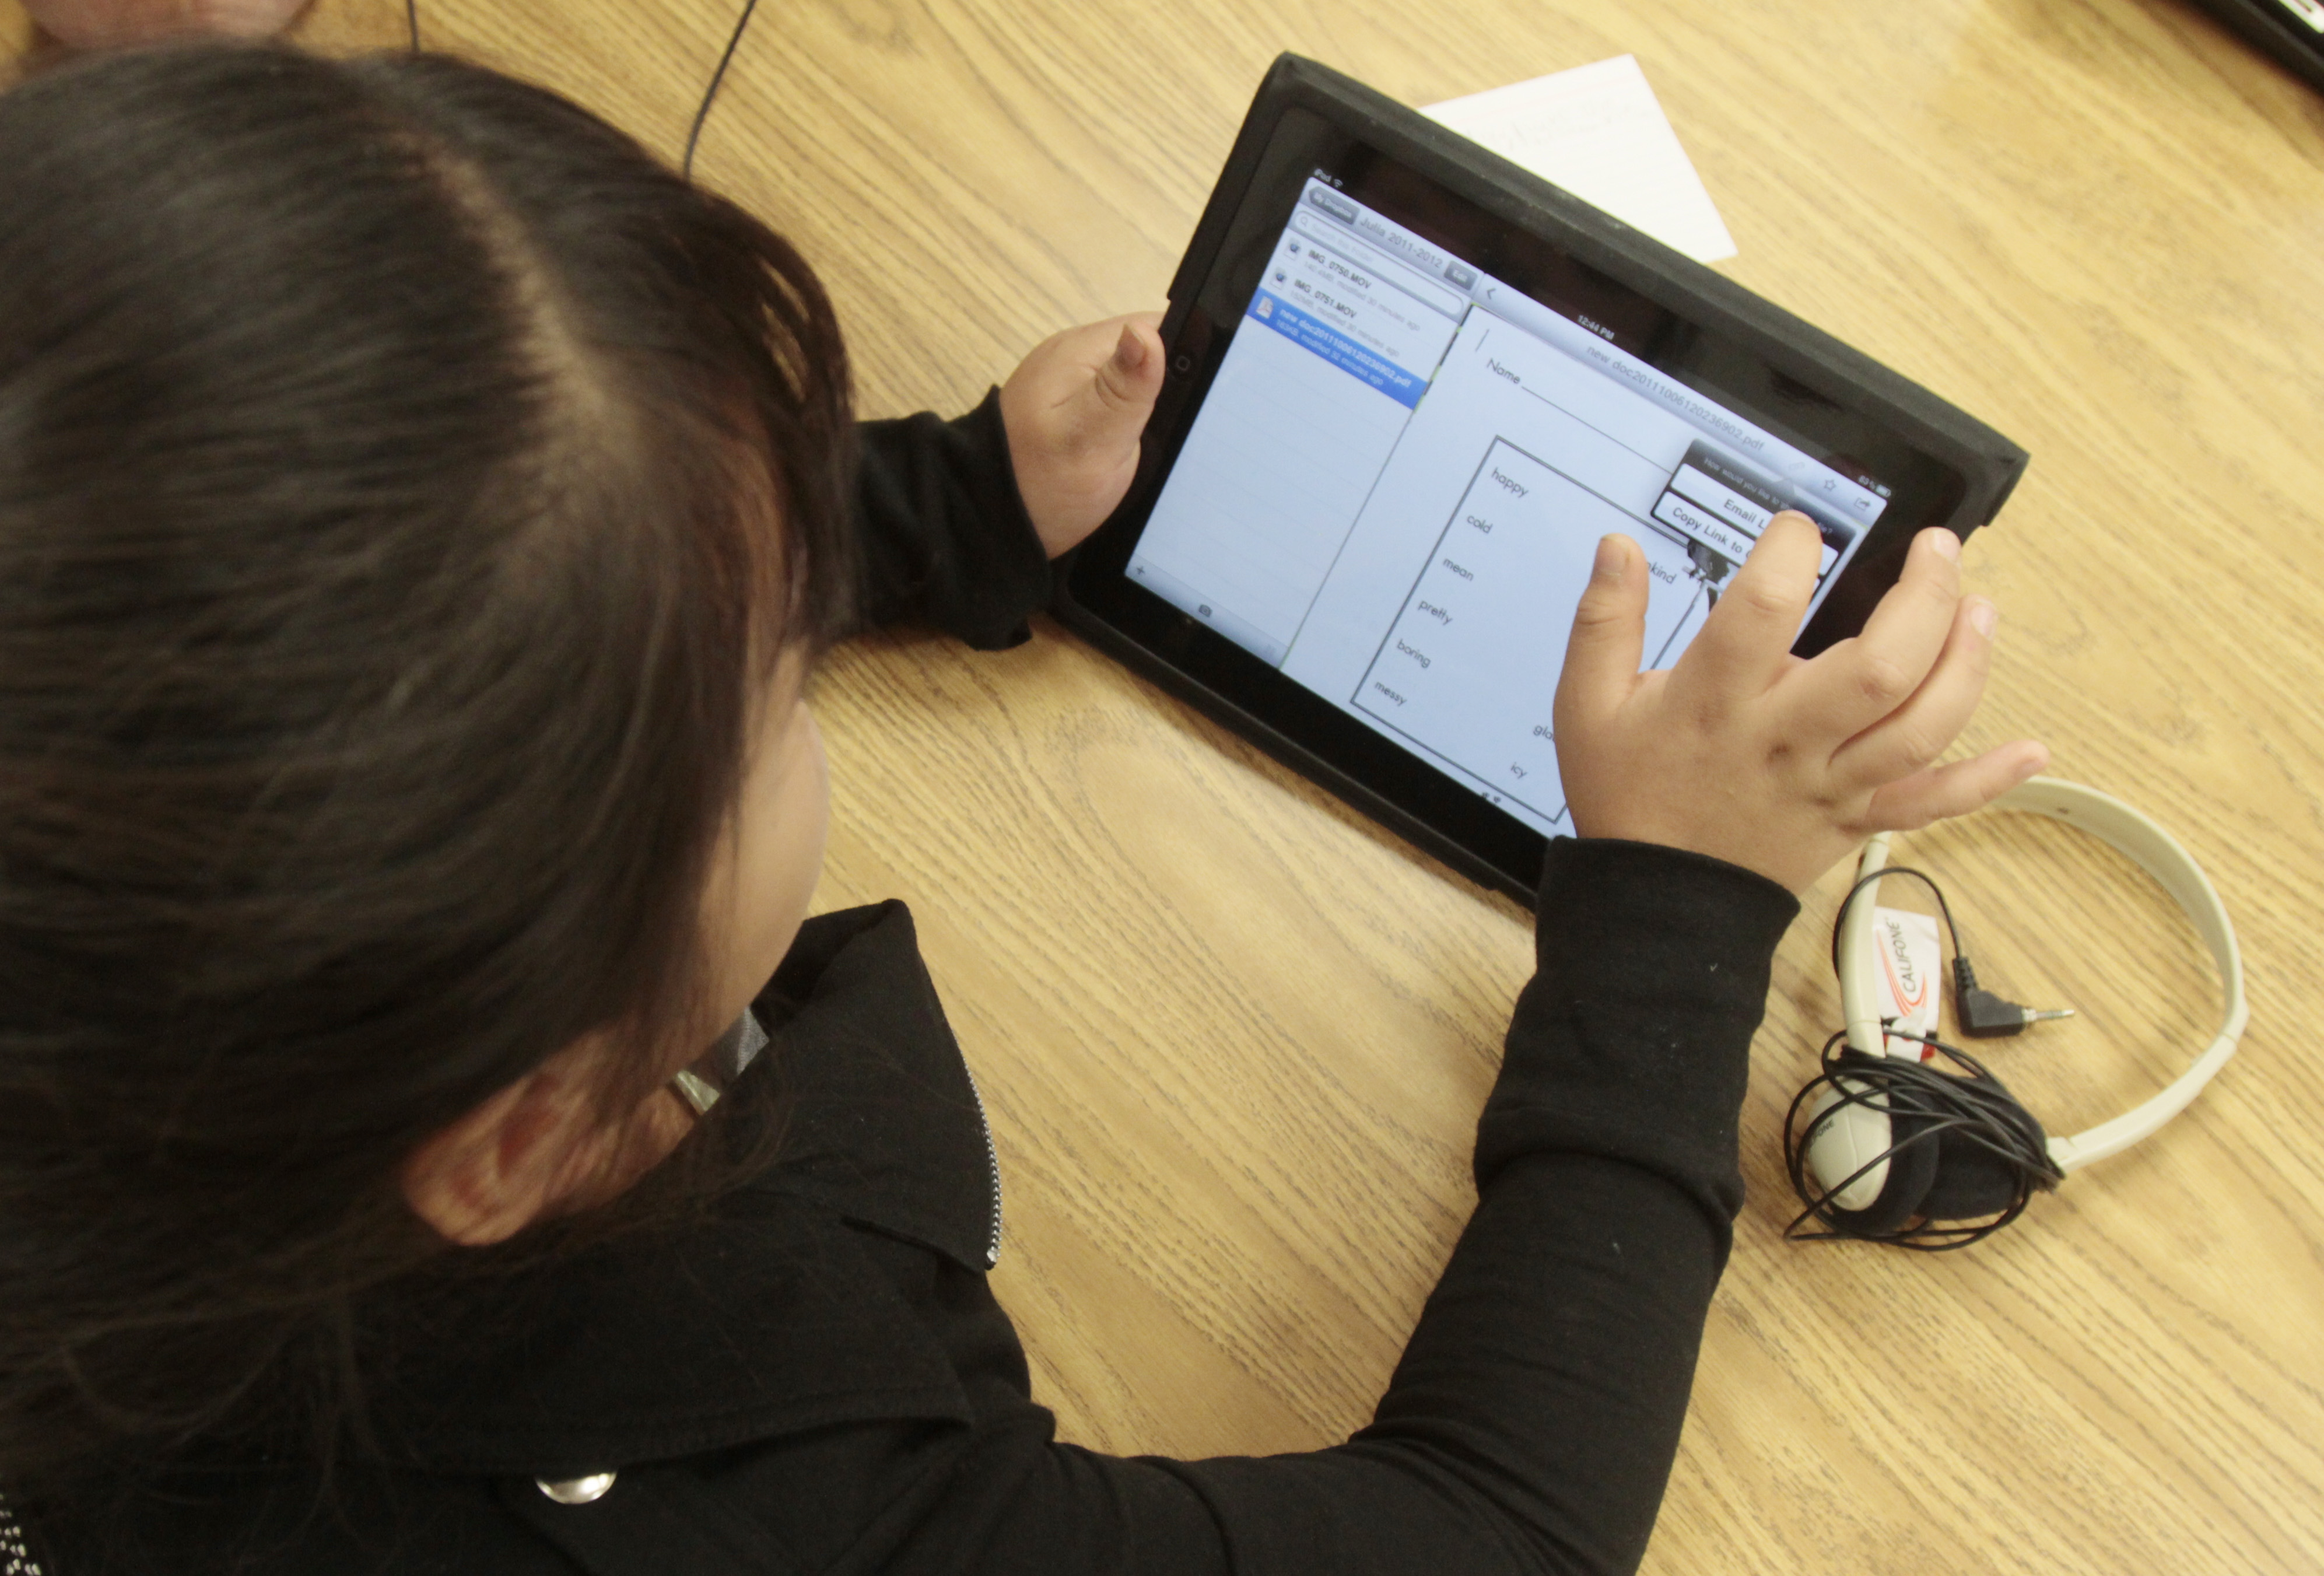 Kids Learning Tablet >> Students Are 'Hacking' Their School-Issued iPads: Good for Them - The Atlantic